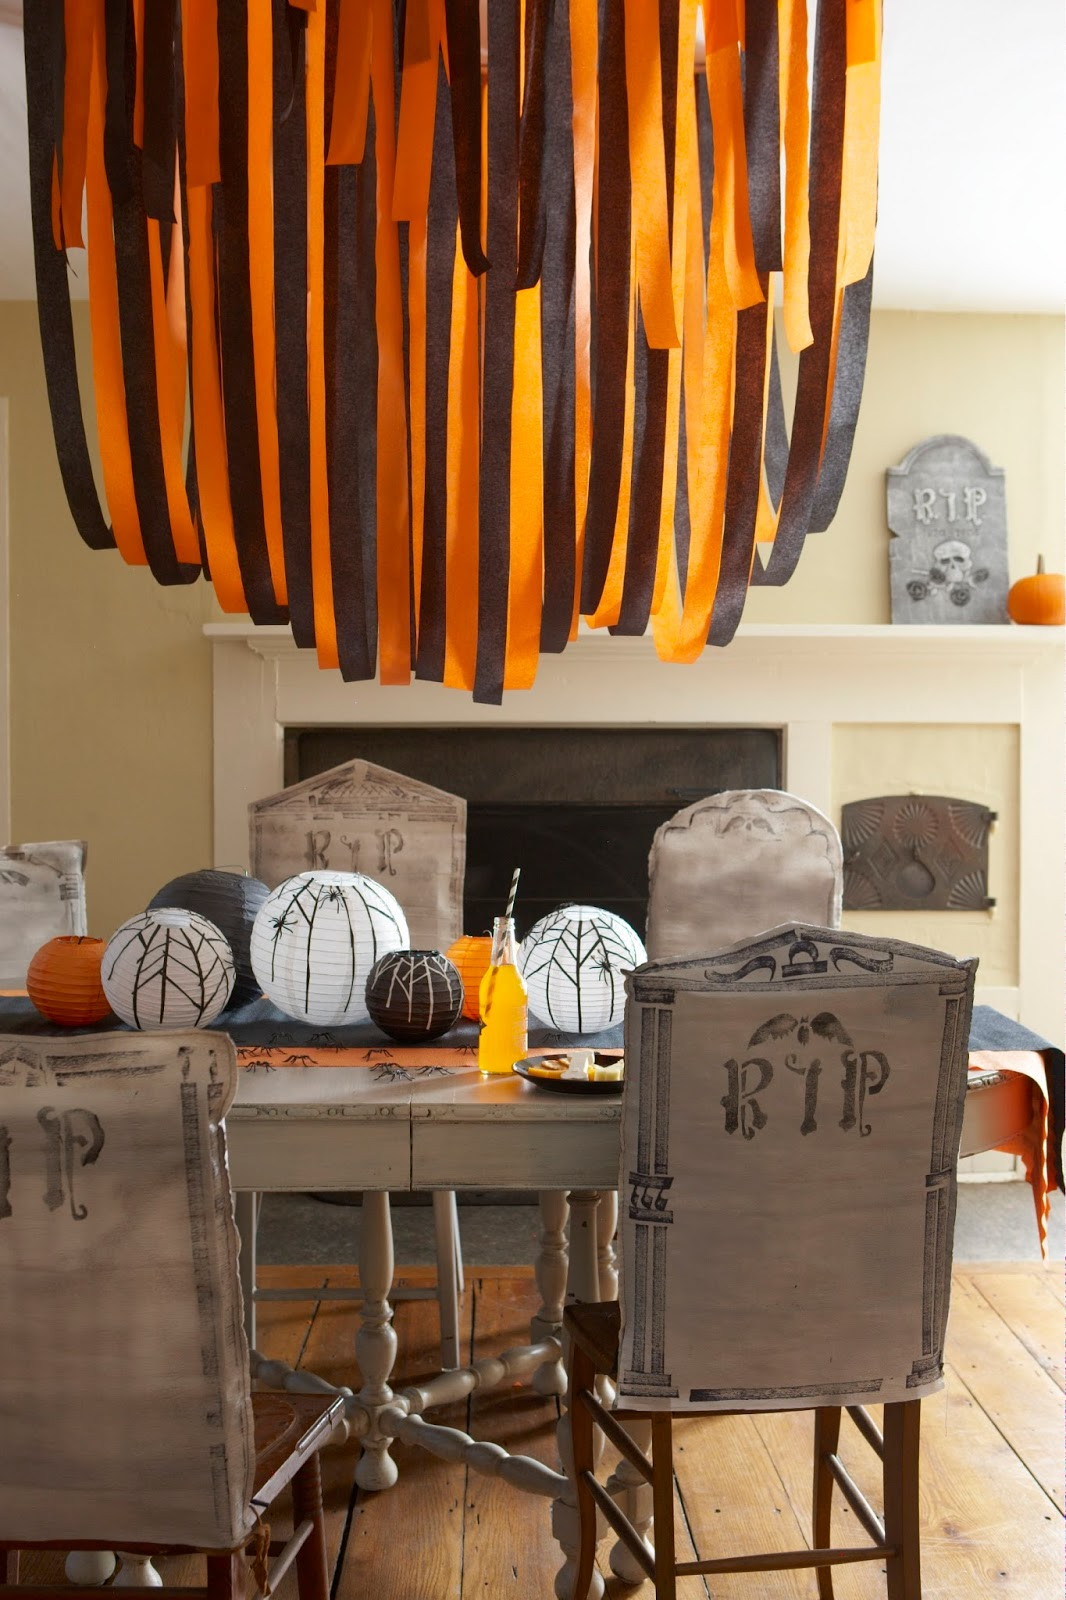 Halloween Entertaining. A spectacular Halloween is waiting for you courtesy of Williams-Sonoma's collections of Halloween entertaining items for the kitchen and table.